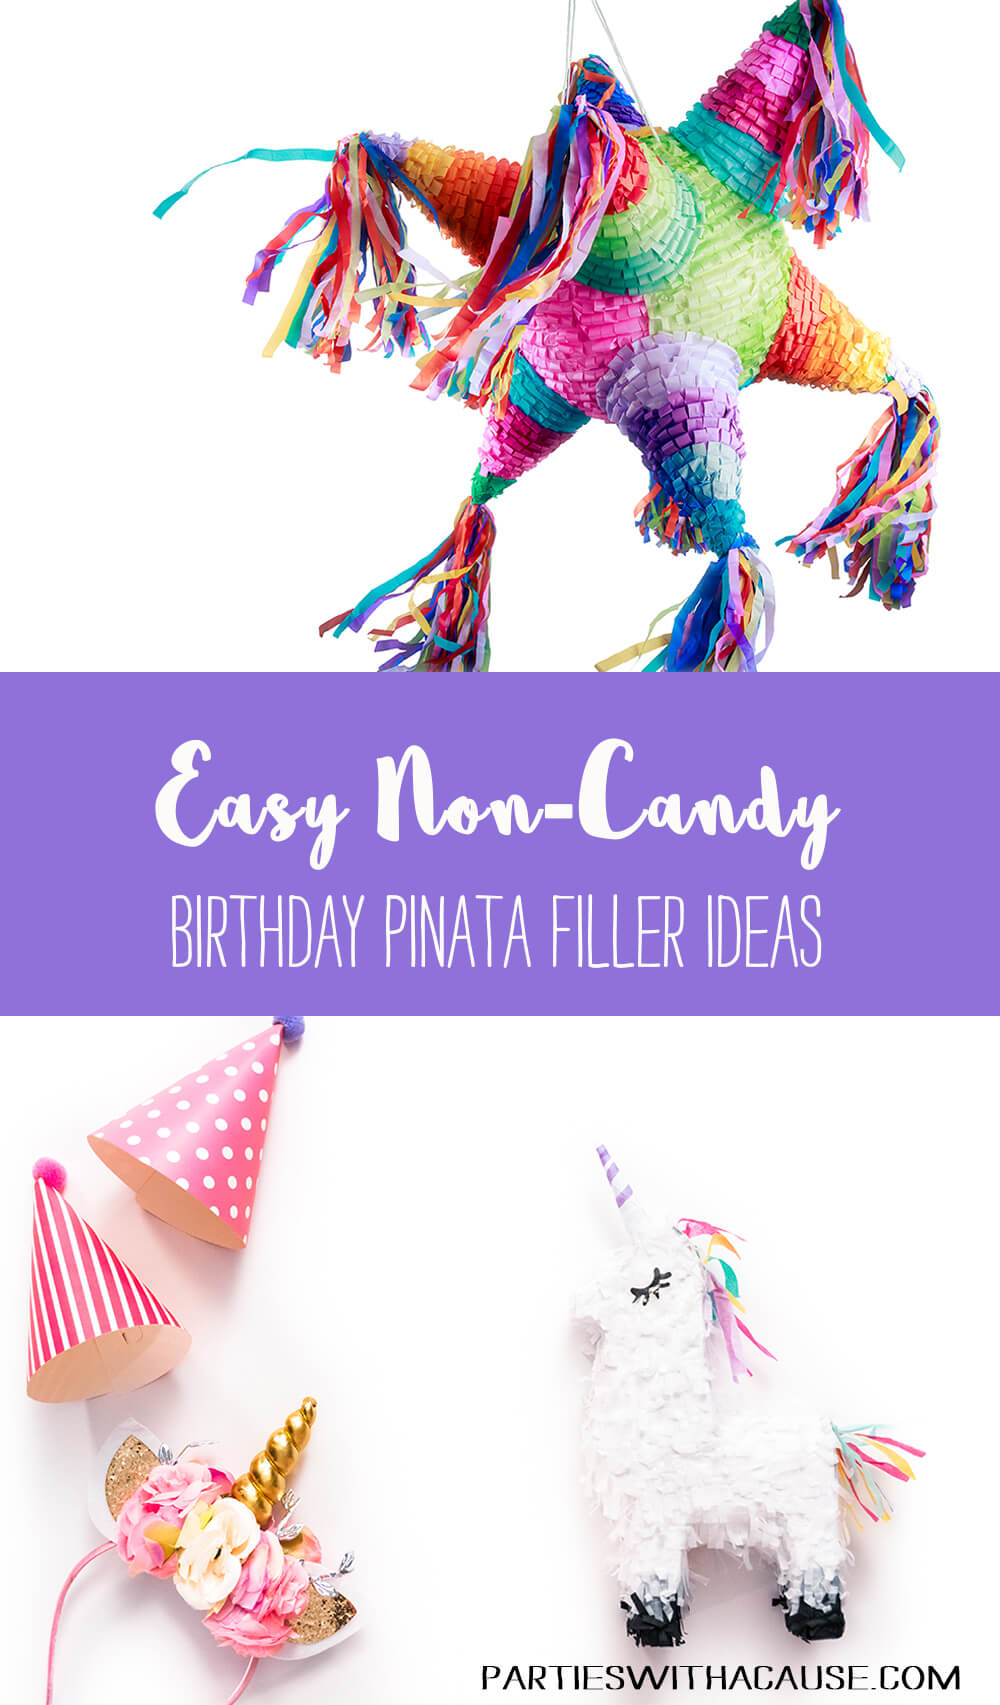 Birthday piñata filler ideas other than candy